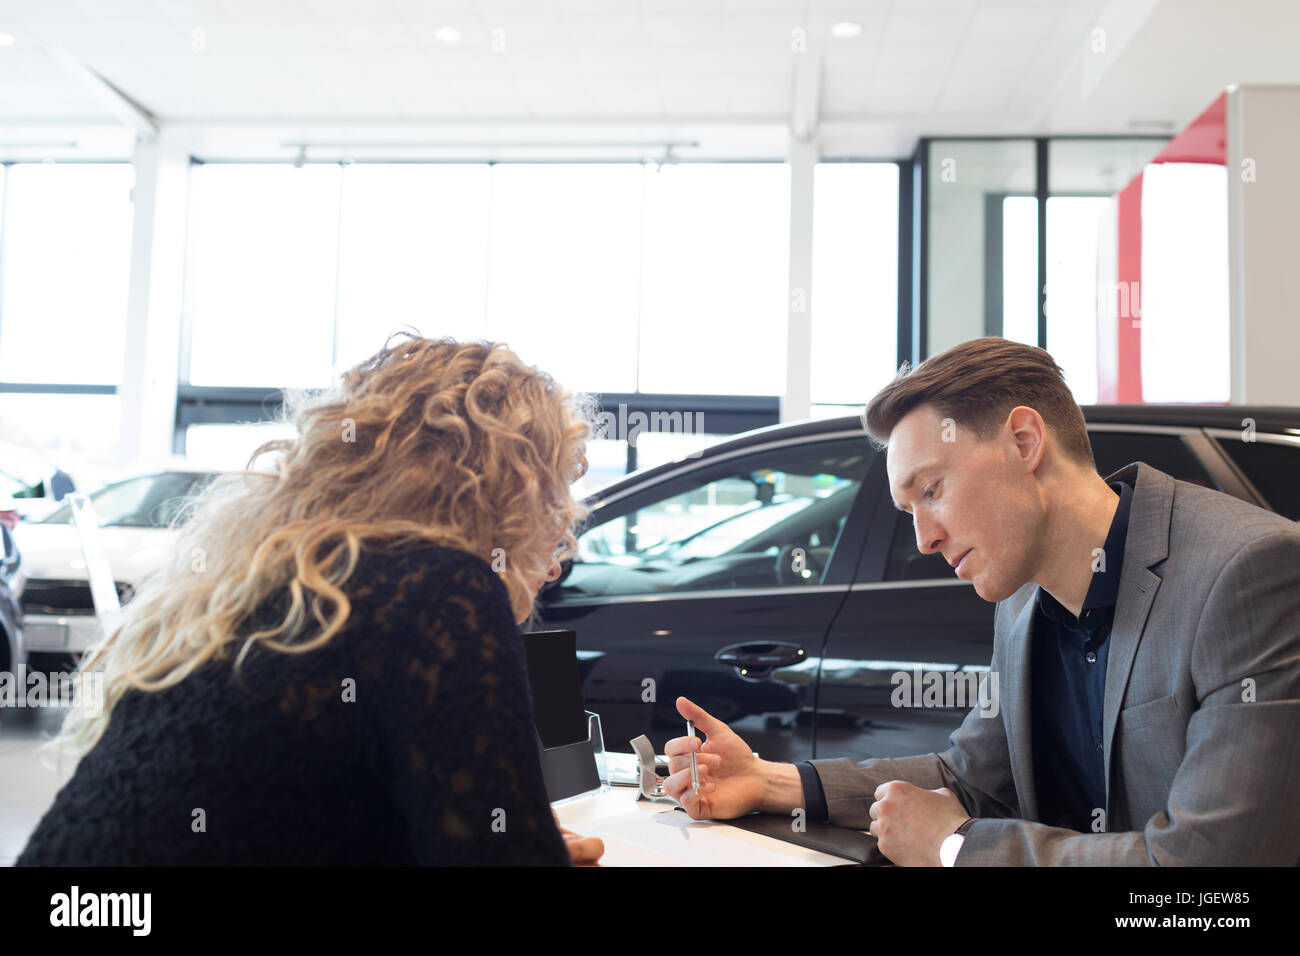 Salesman discussing over document with customer in showroom - Stock Image